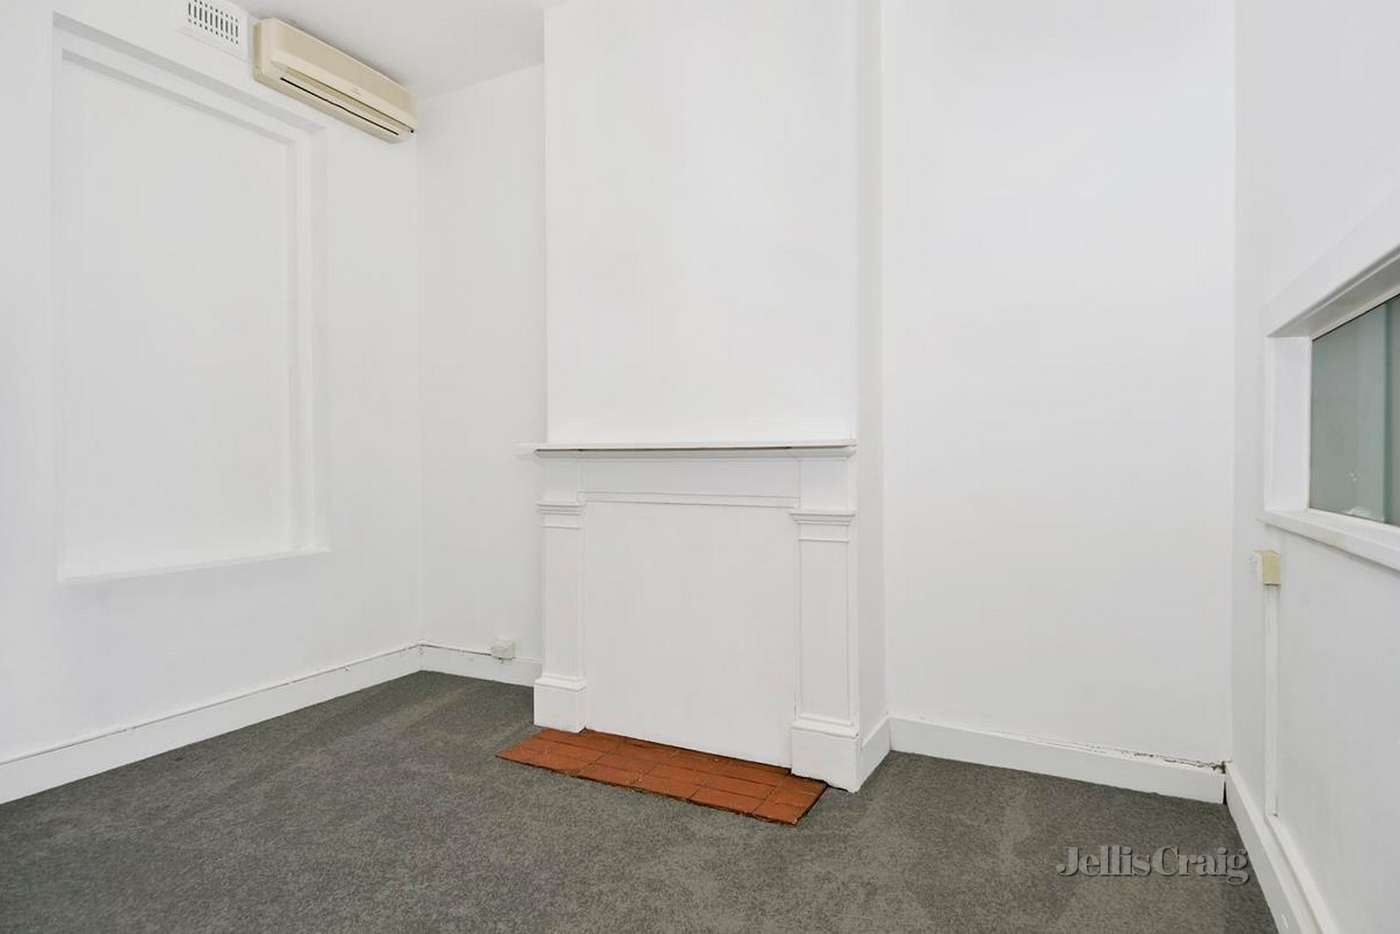 Sixth view of Homely house listing, 33 Cobden Street, North Melbourne VIC 3051